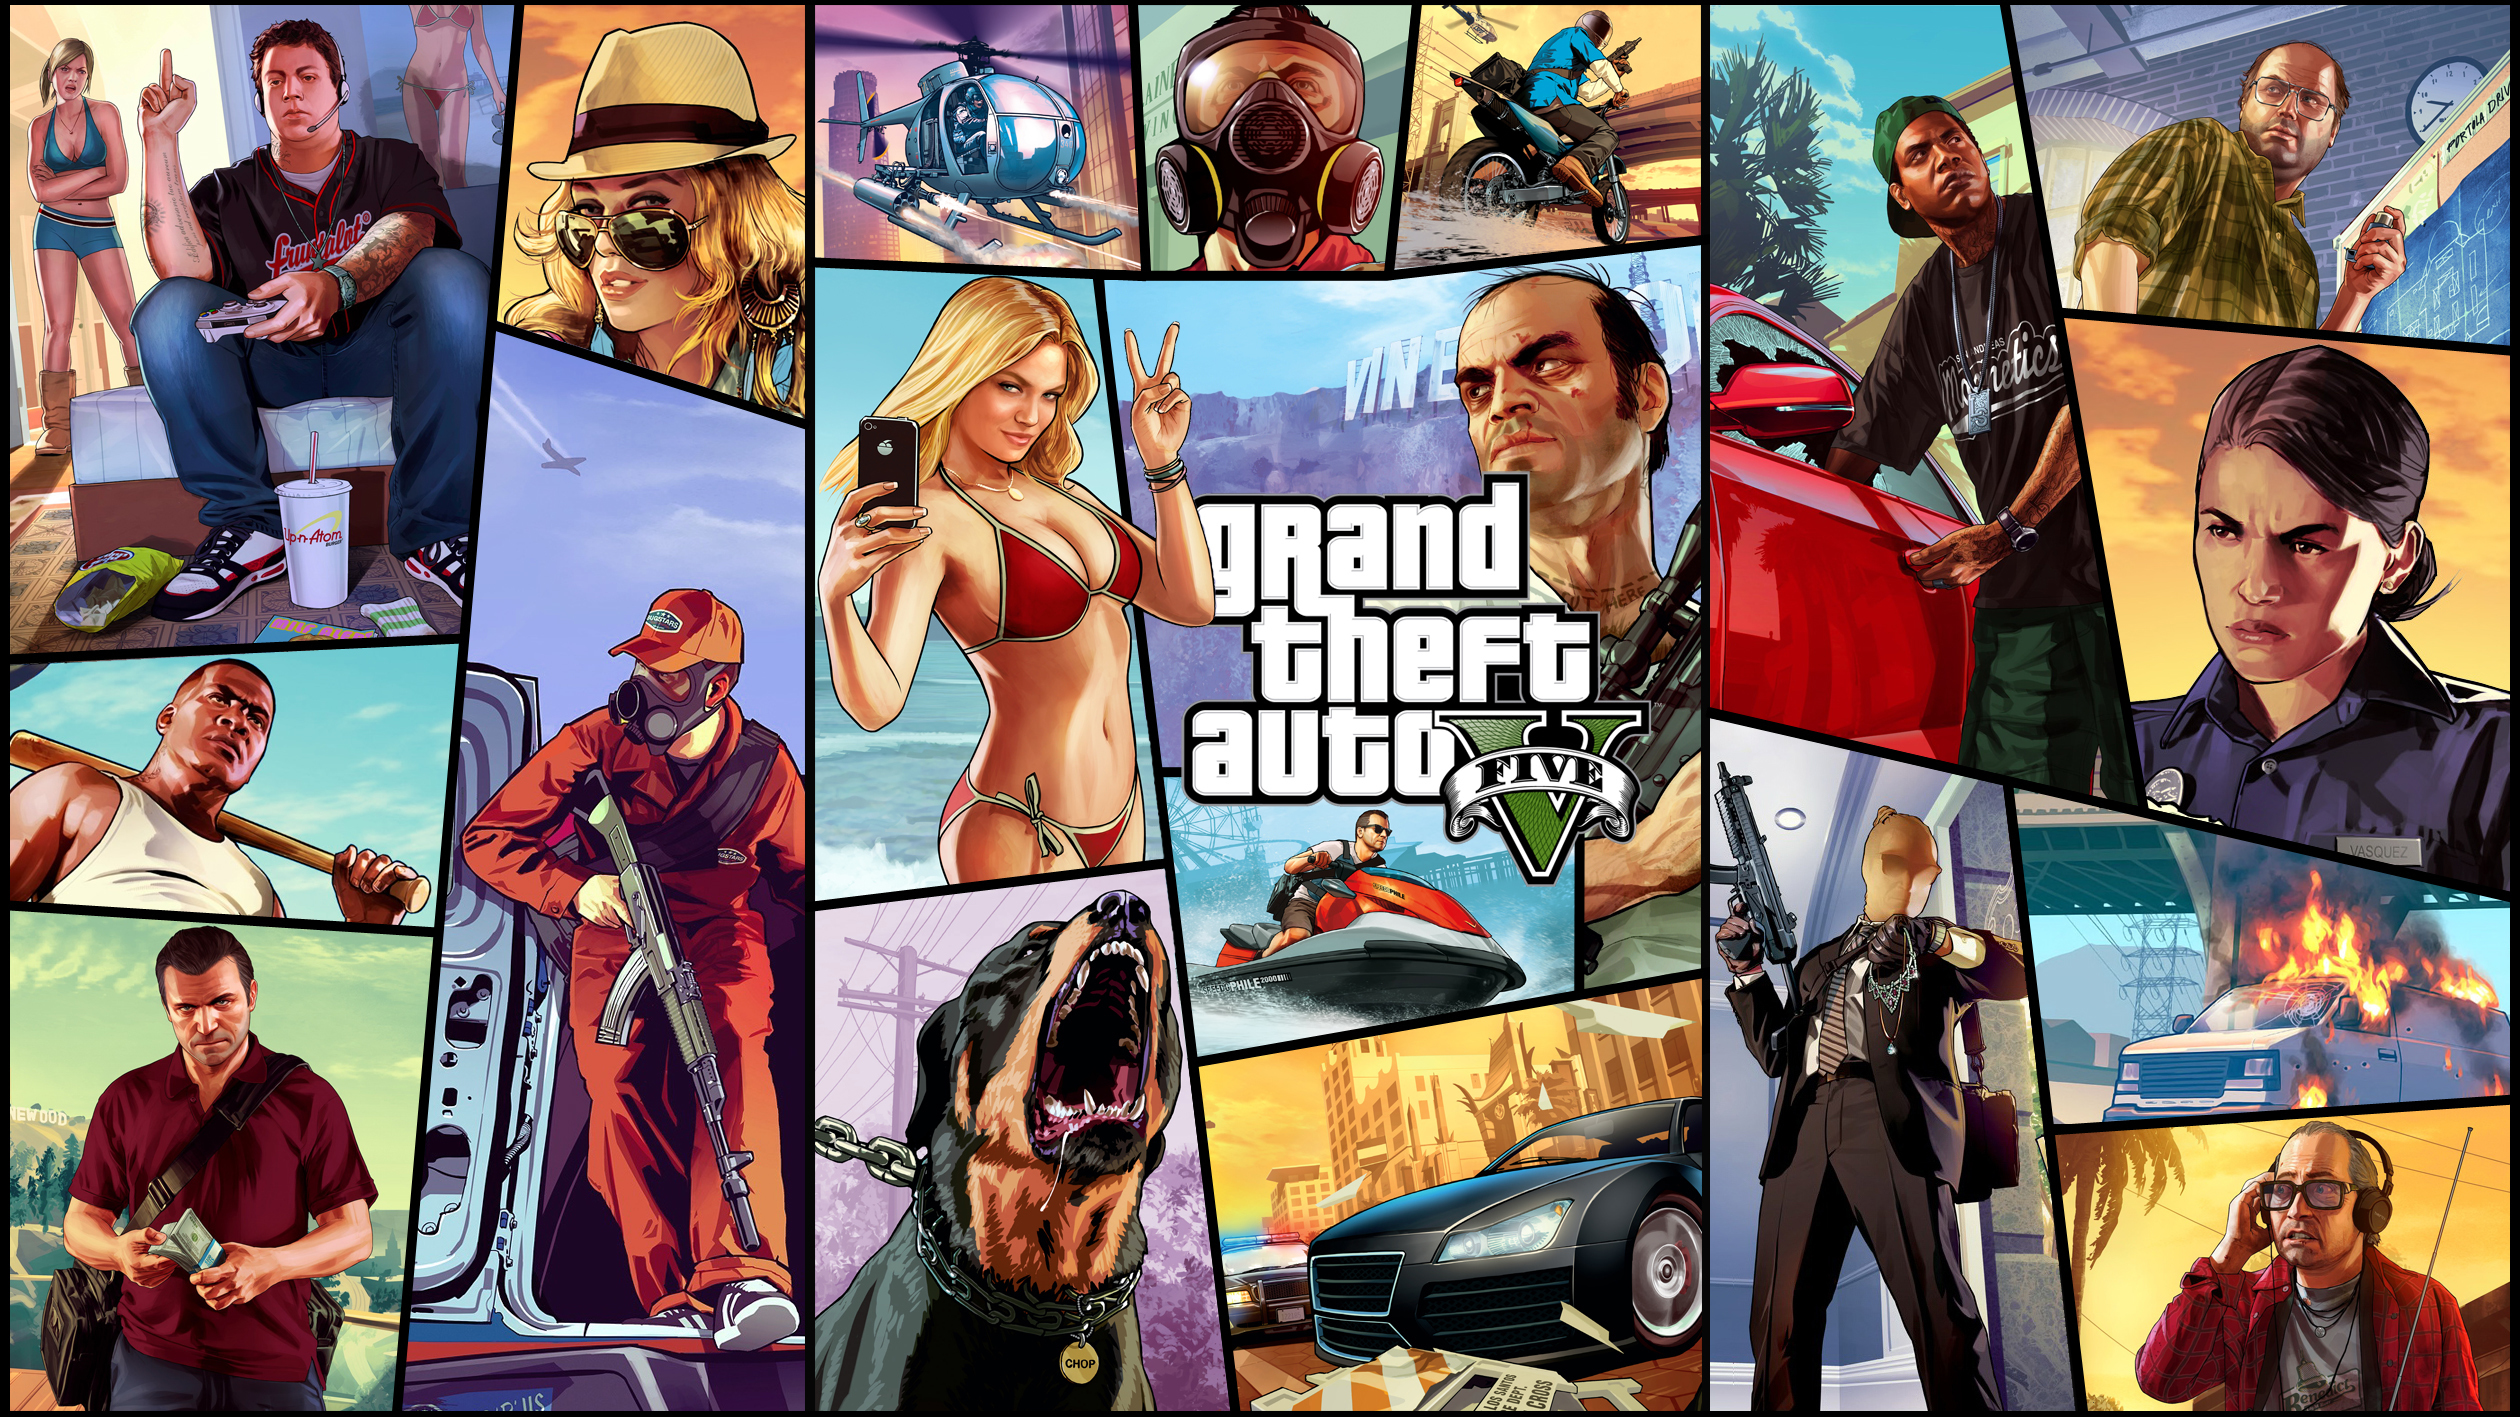 Grand Theft Auto V HD Wallpaper | Achtergrond | 2880x1800 | ID ... | 1417x2520